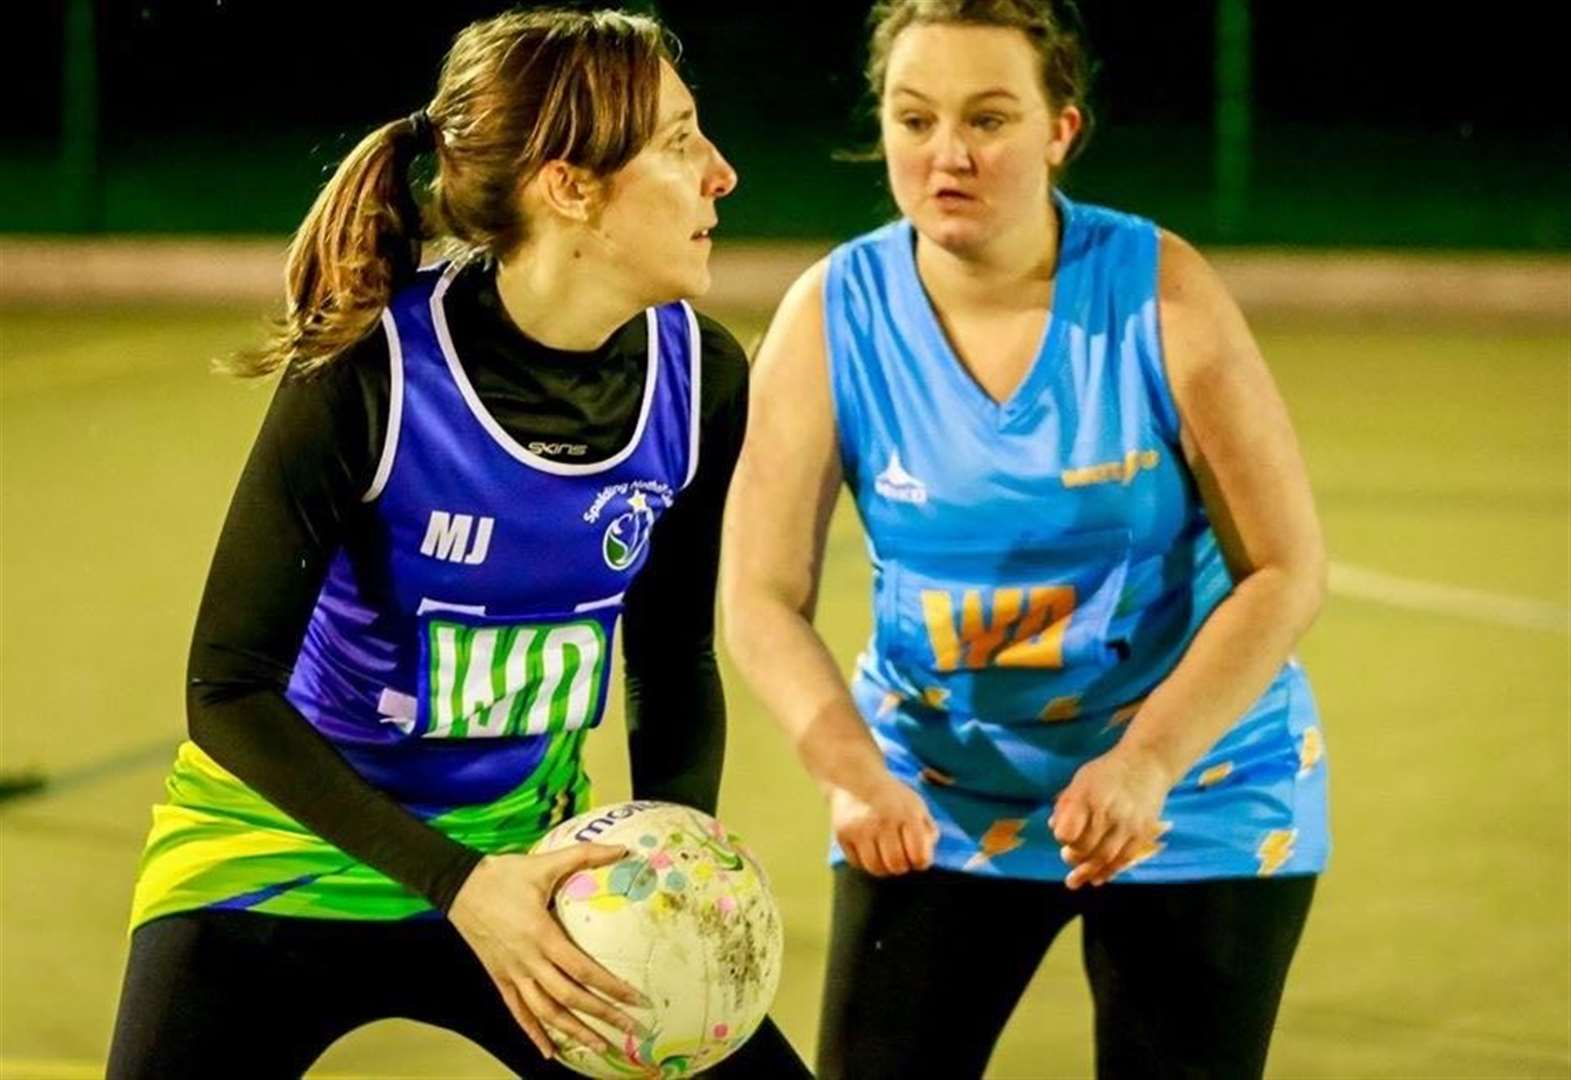 NETBALL: Lucy and Millie unstoppable in shooting circle